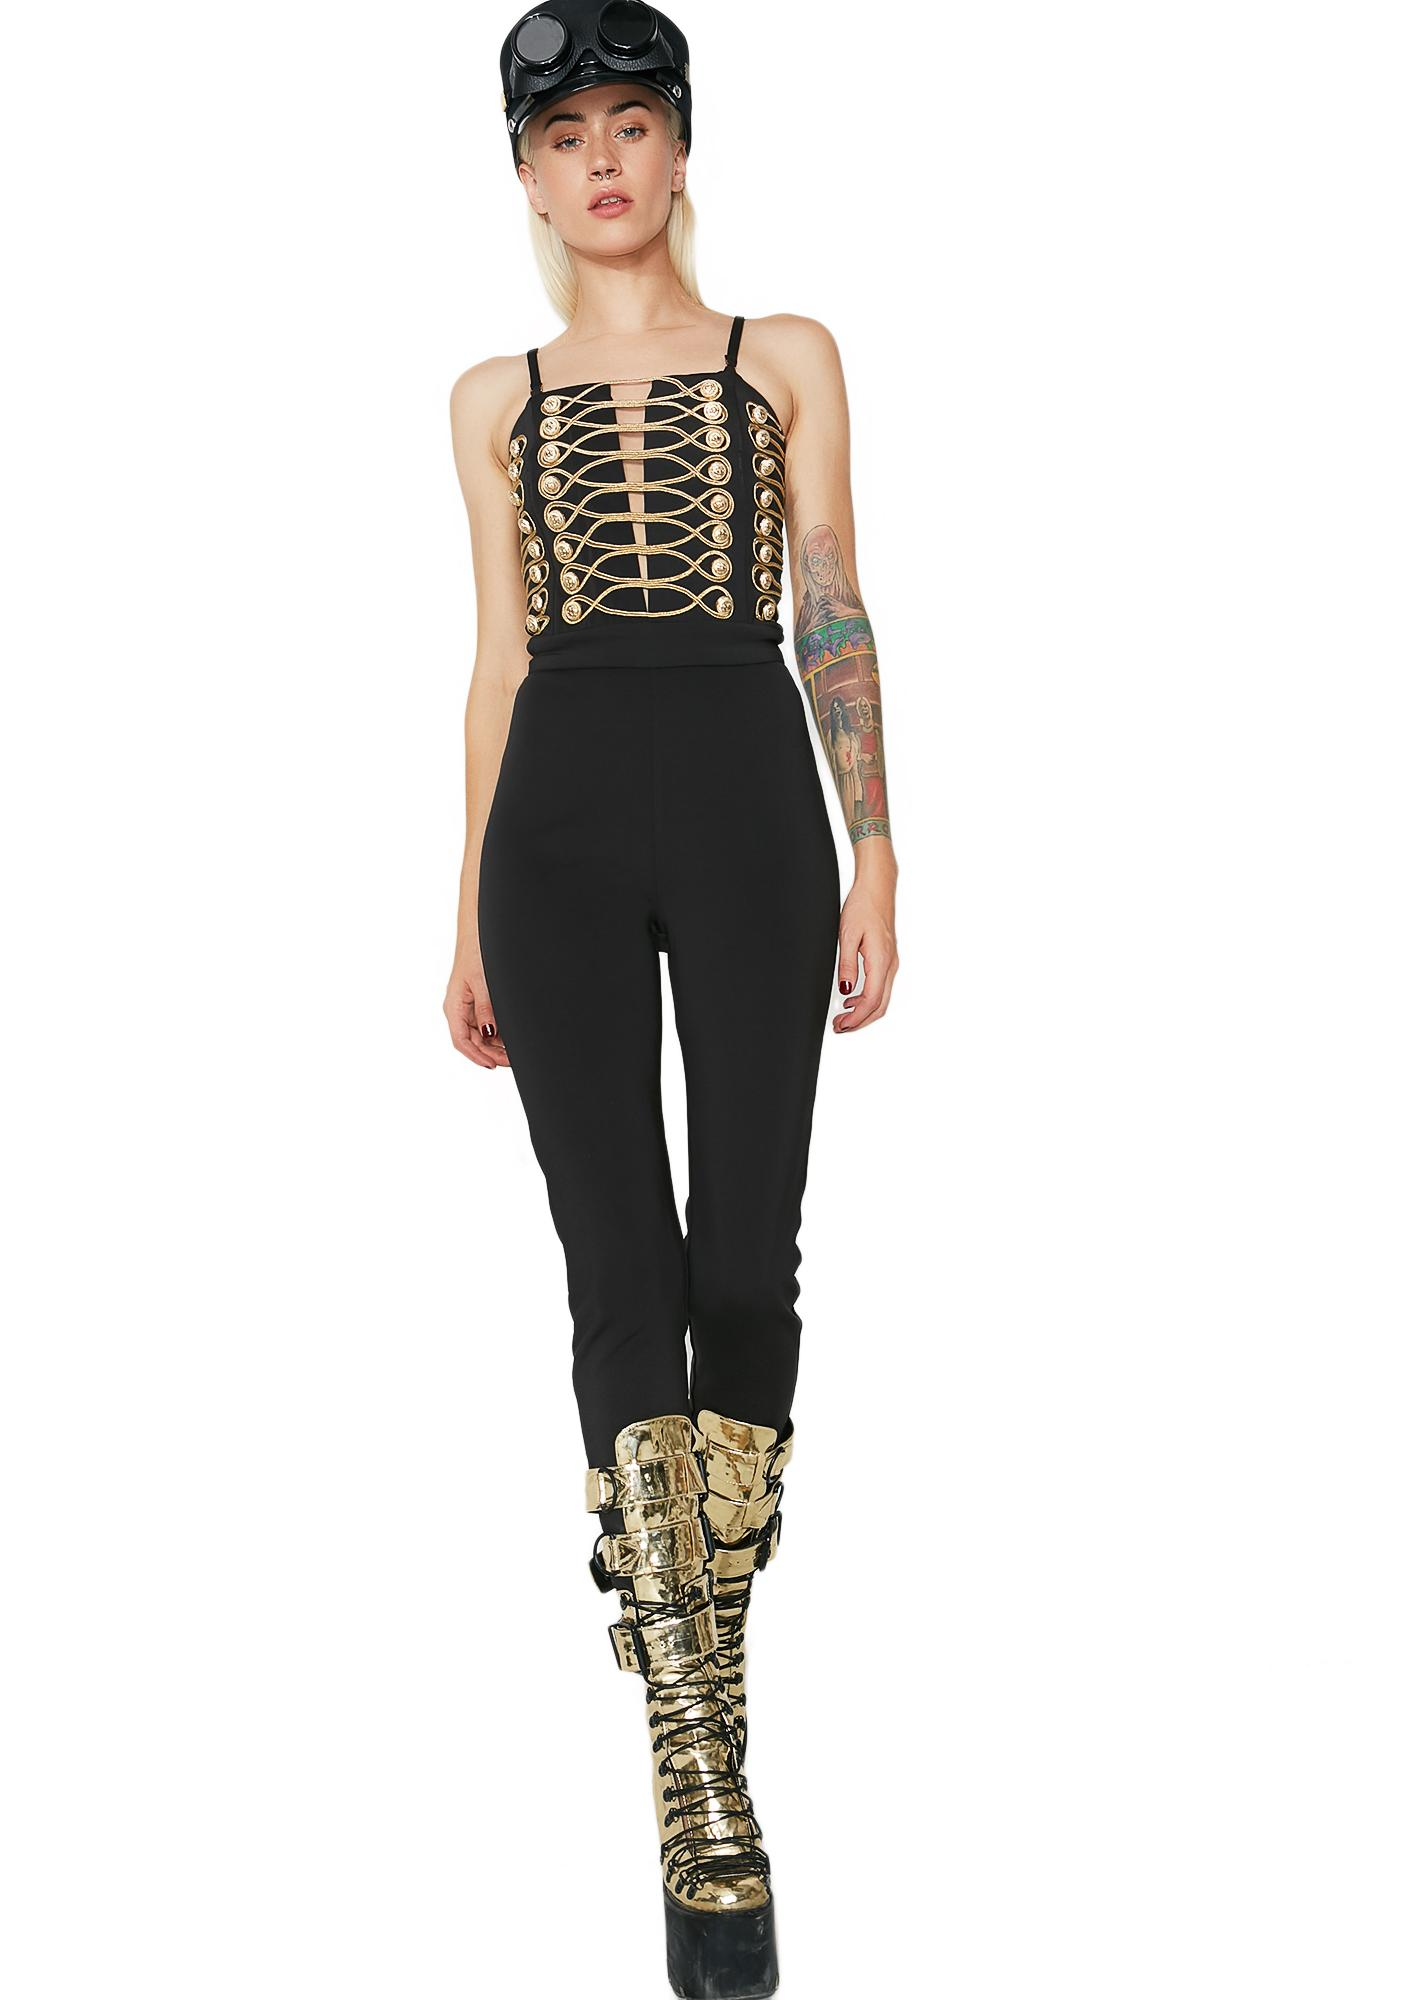 Band Leader Jumpsuit